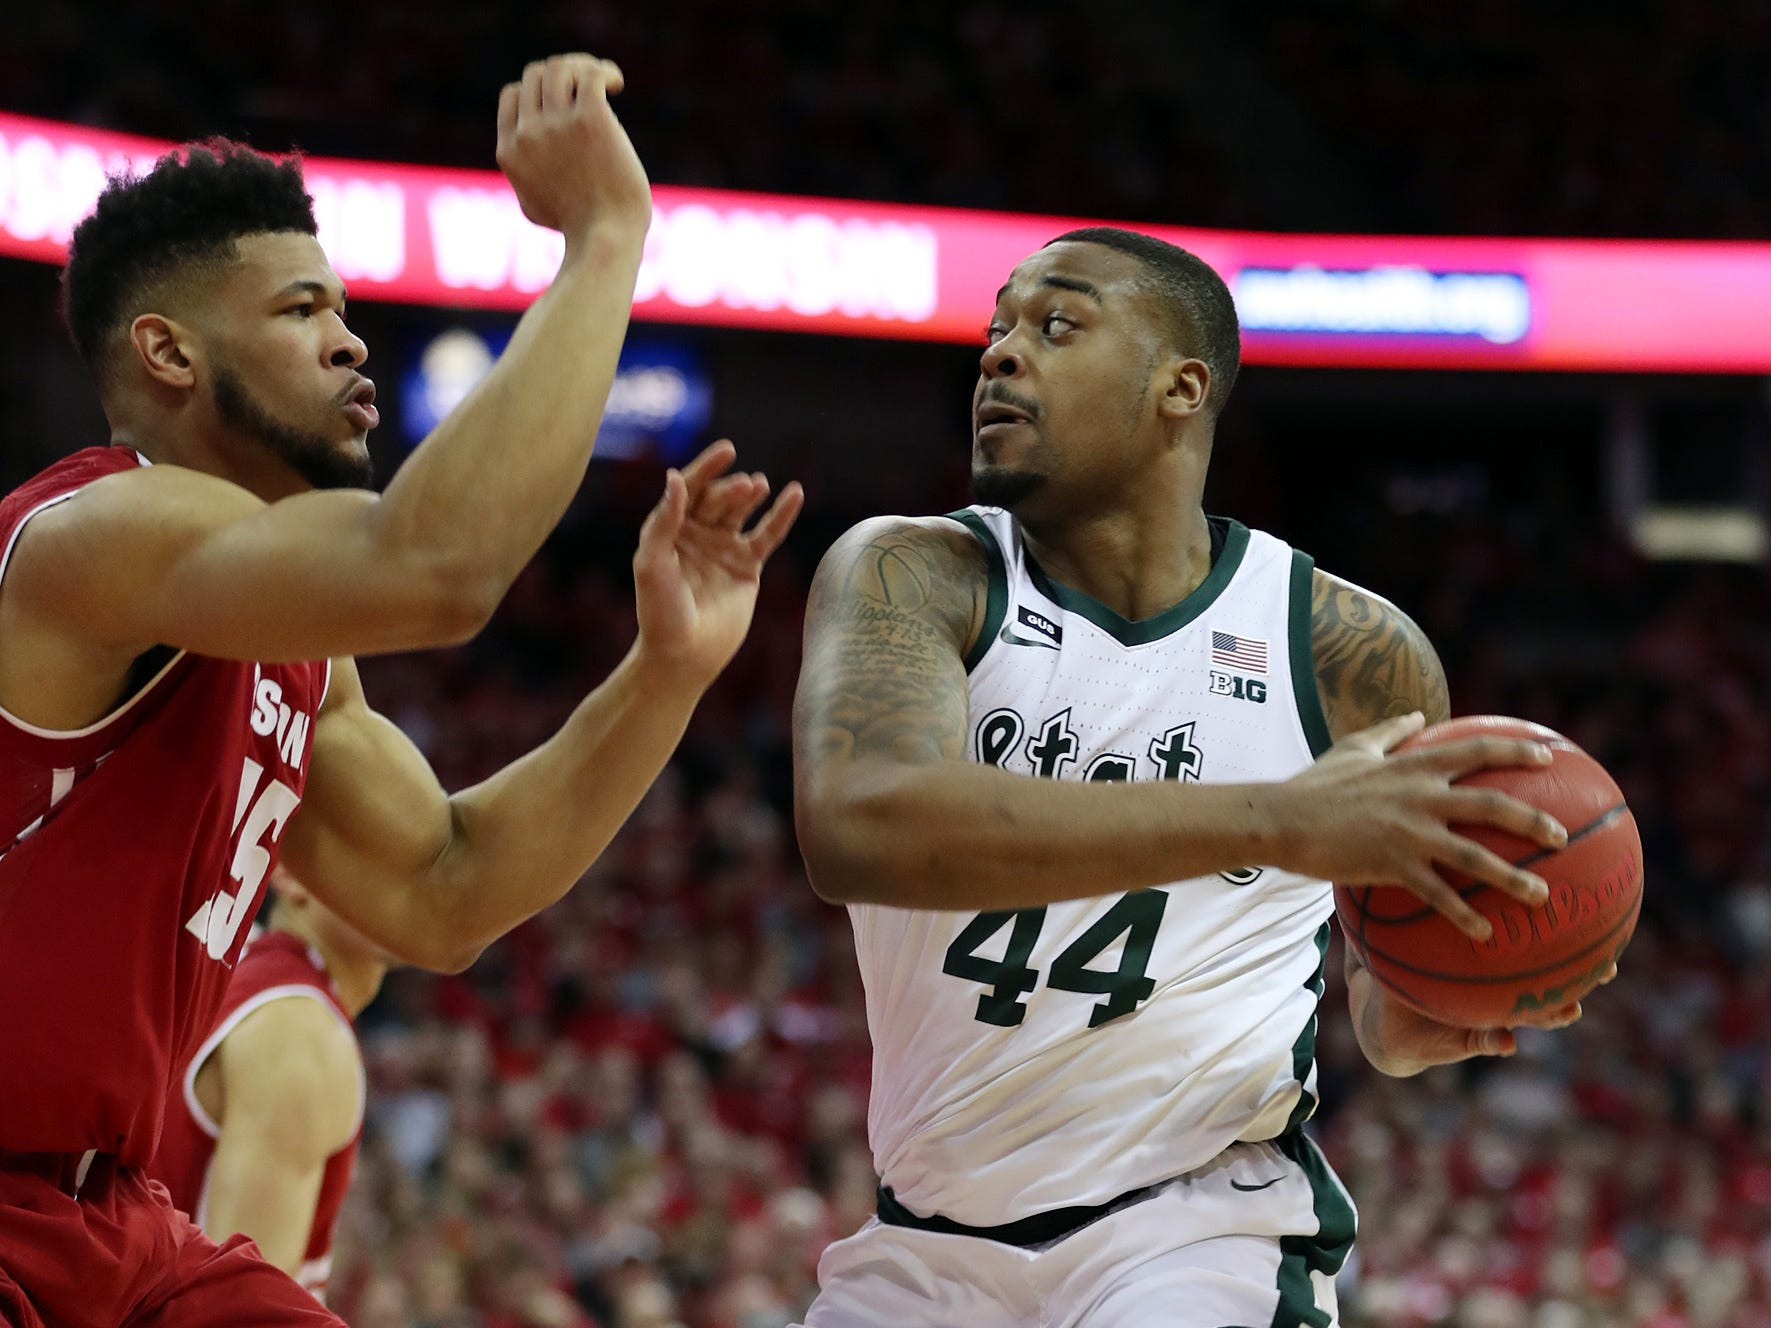 Michigan State Spartans forward Nick Ward (44) controls the ball as Wisconsin Badgers forward Charles Thomas (15) defends during the first half at the Kohl Center.